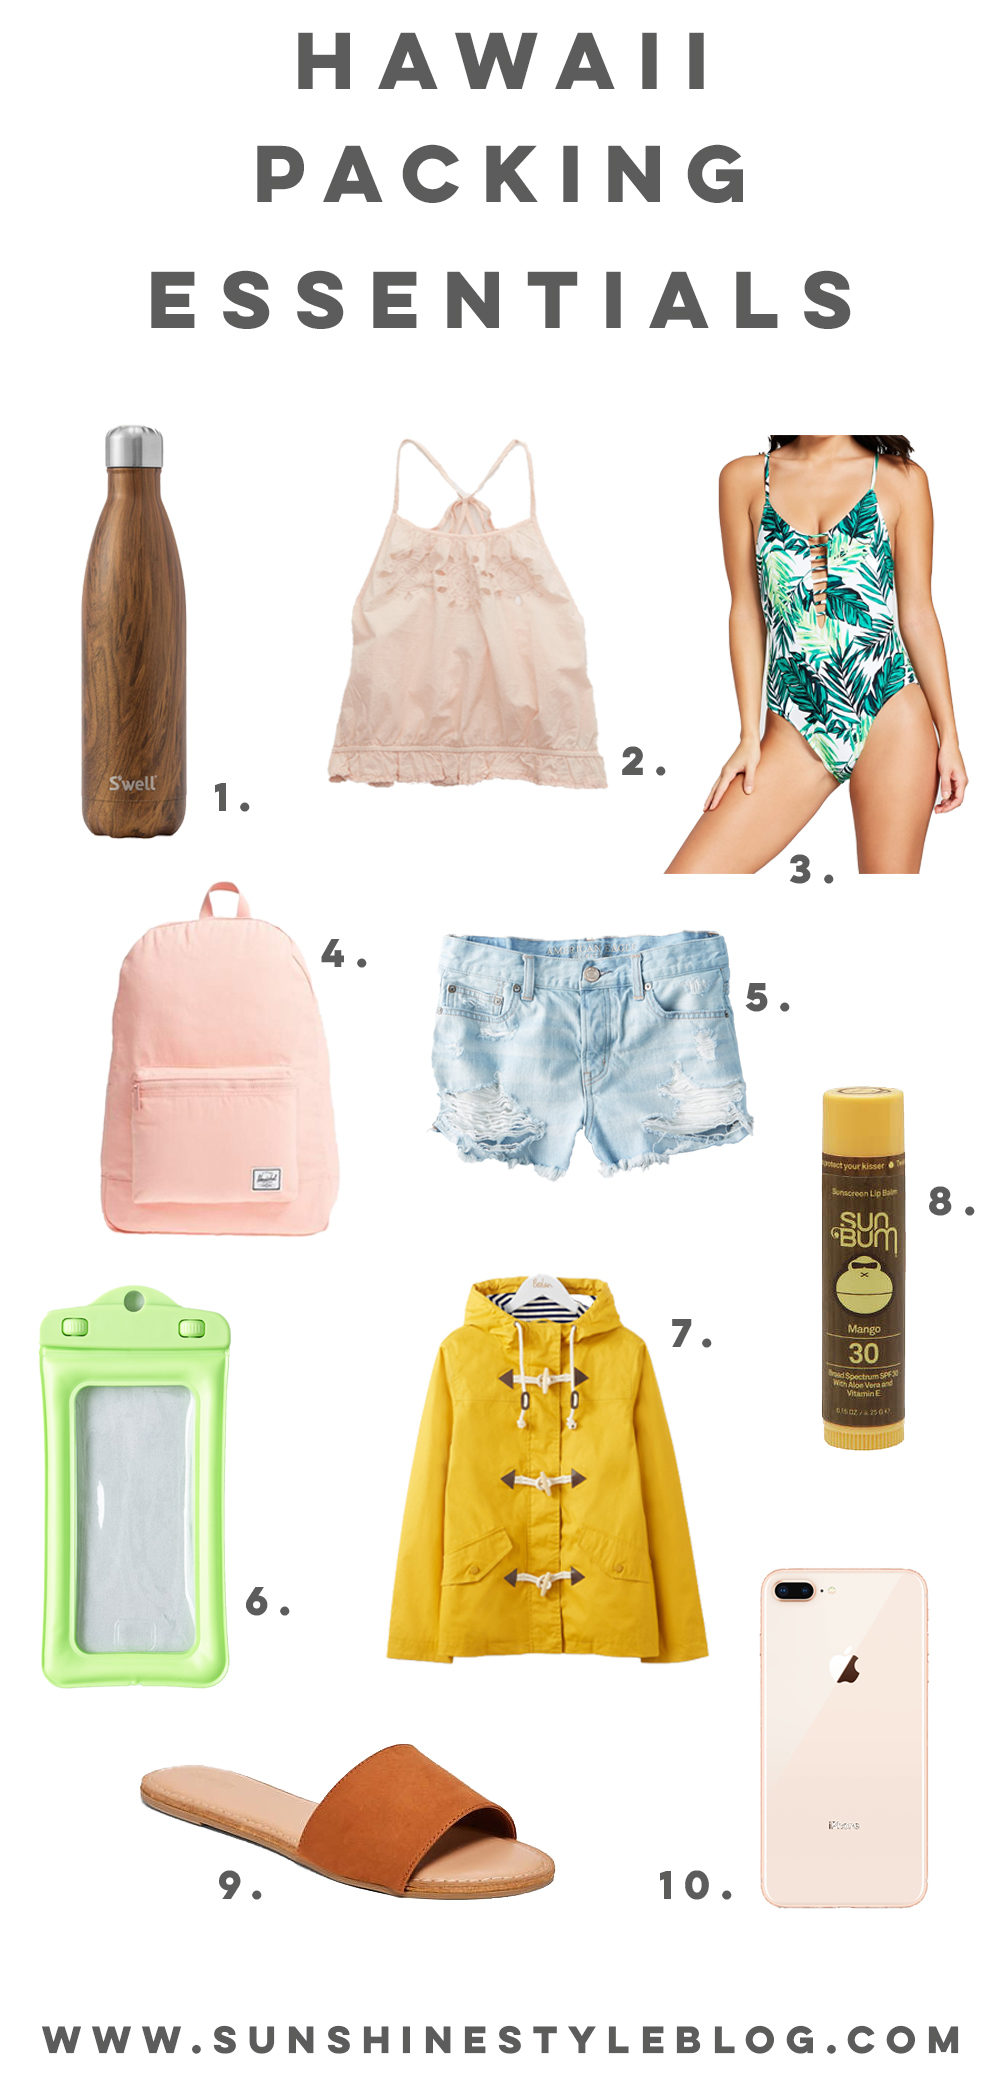 My Top 10 Hawaii Packing Essentials